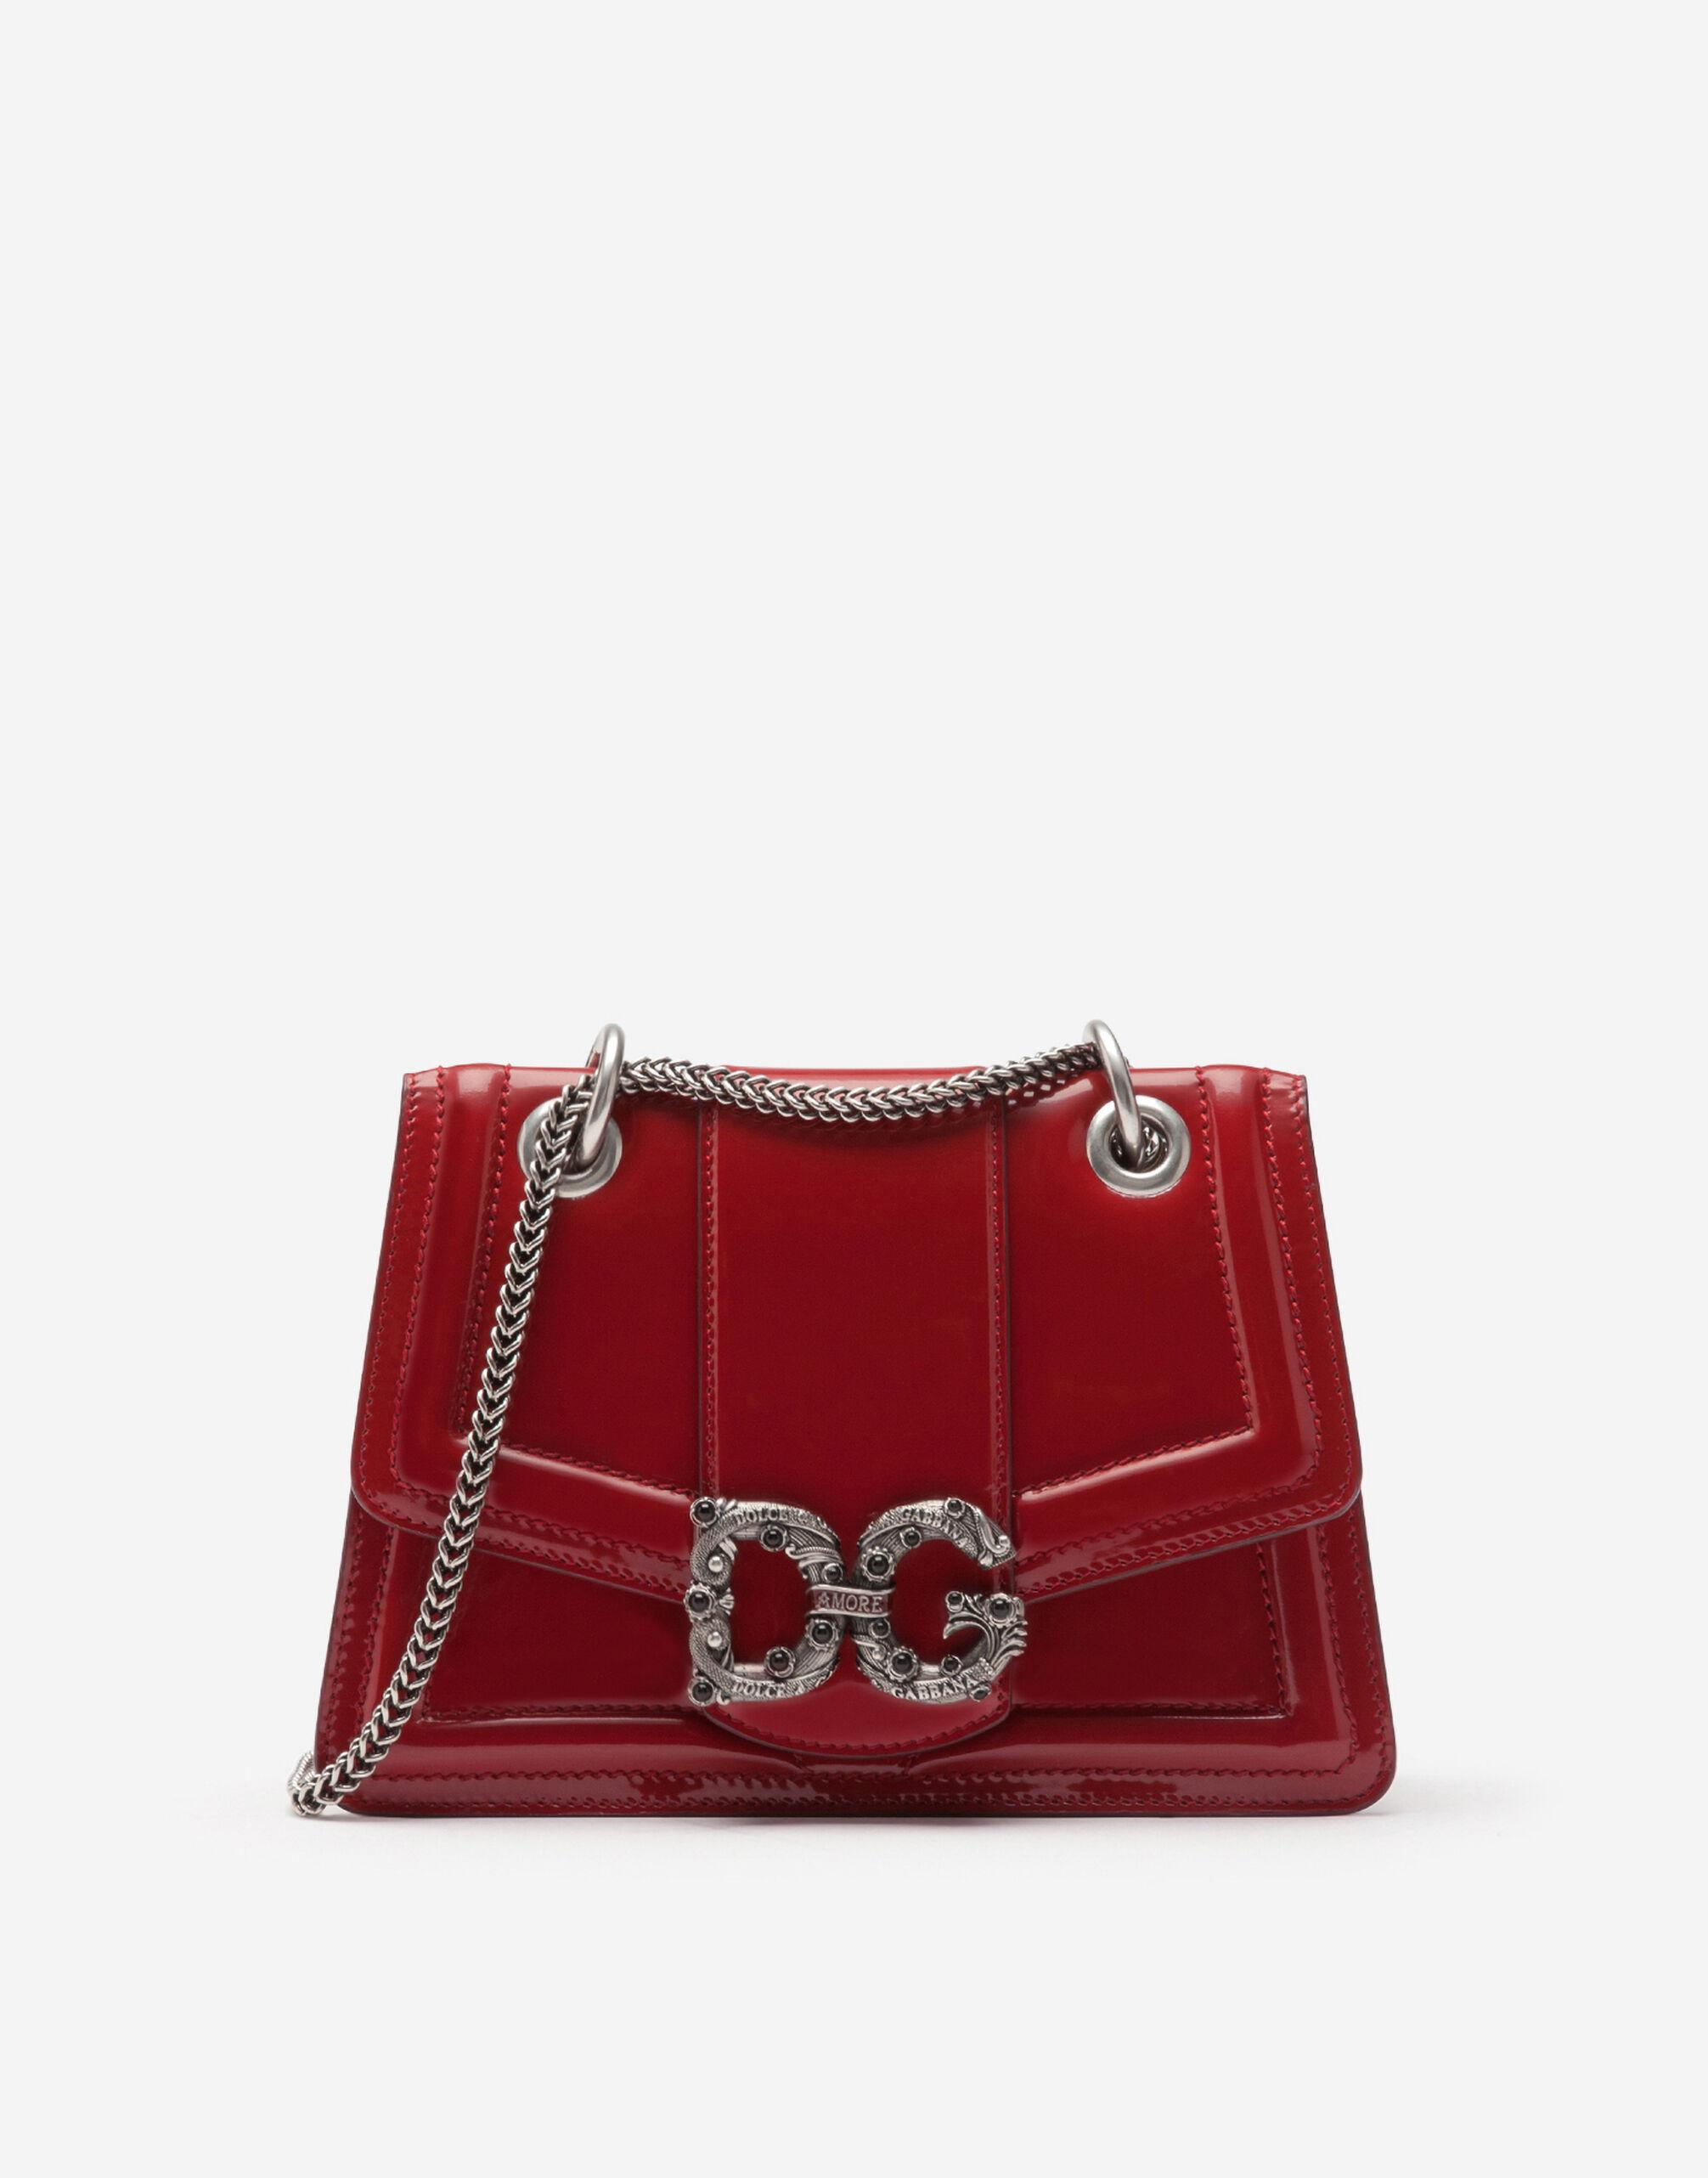 Small DG Amore bag in polished calfskin